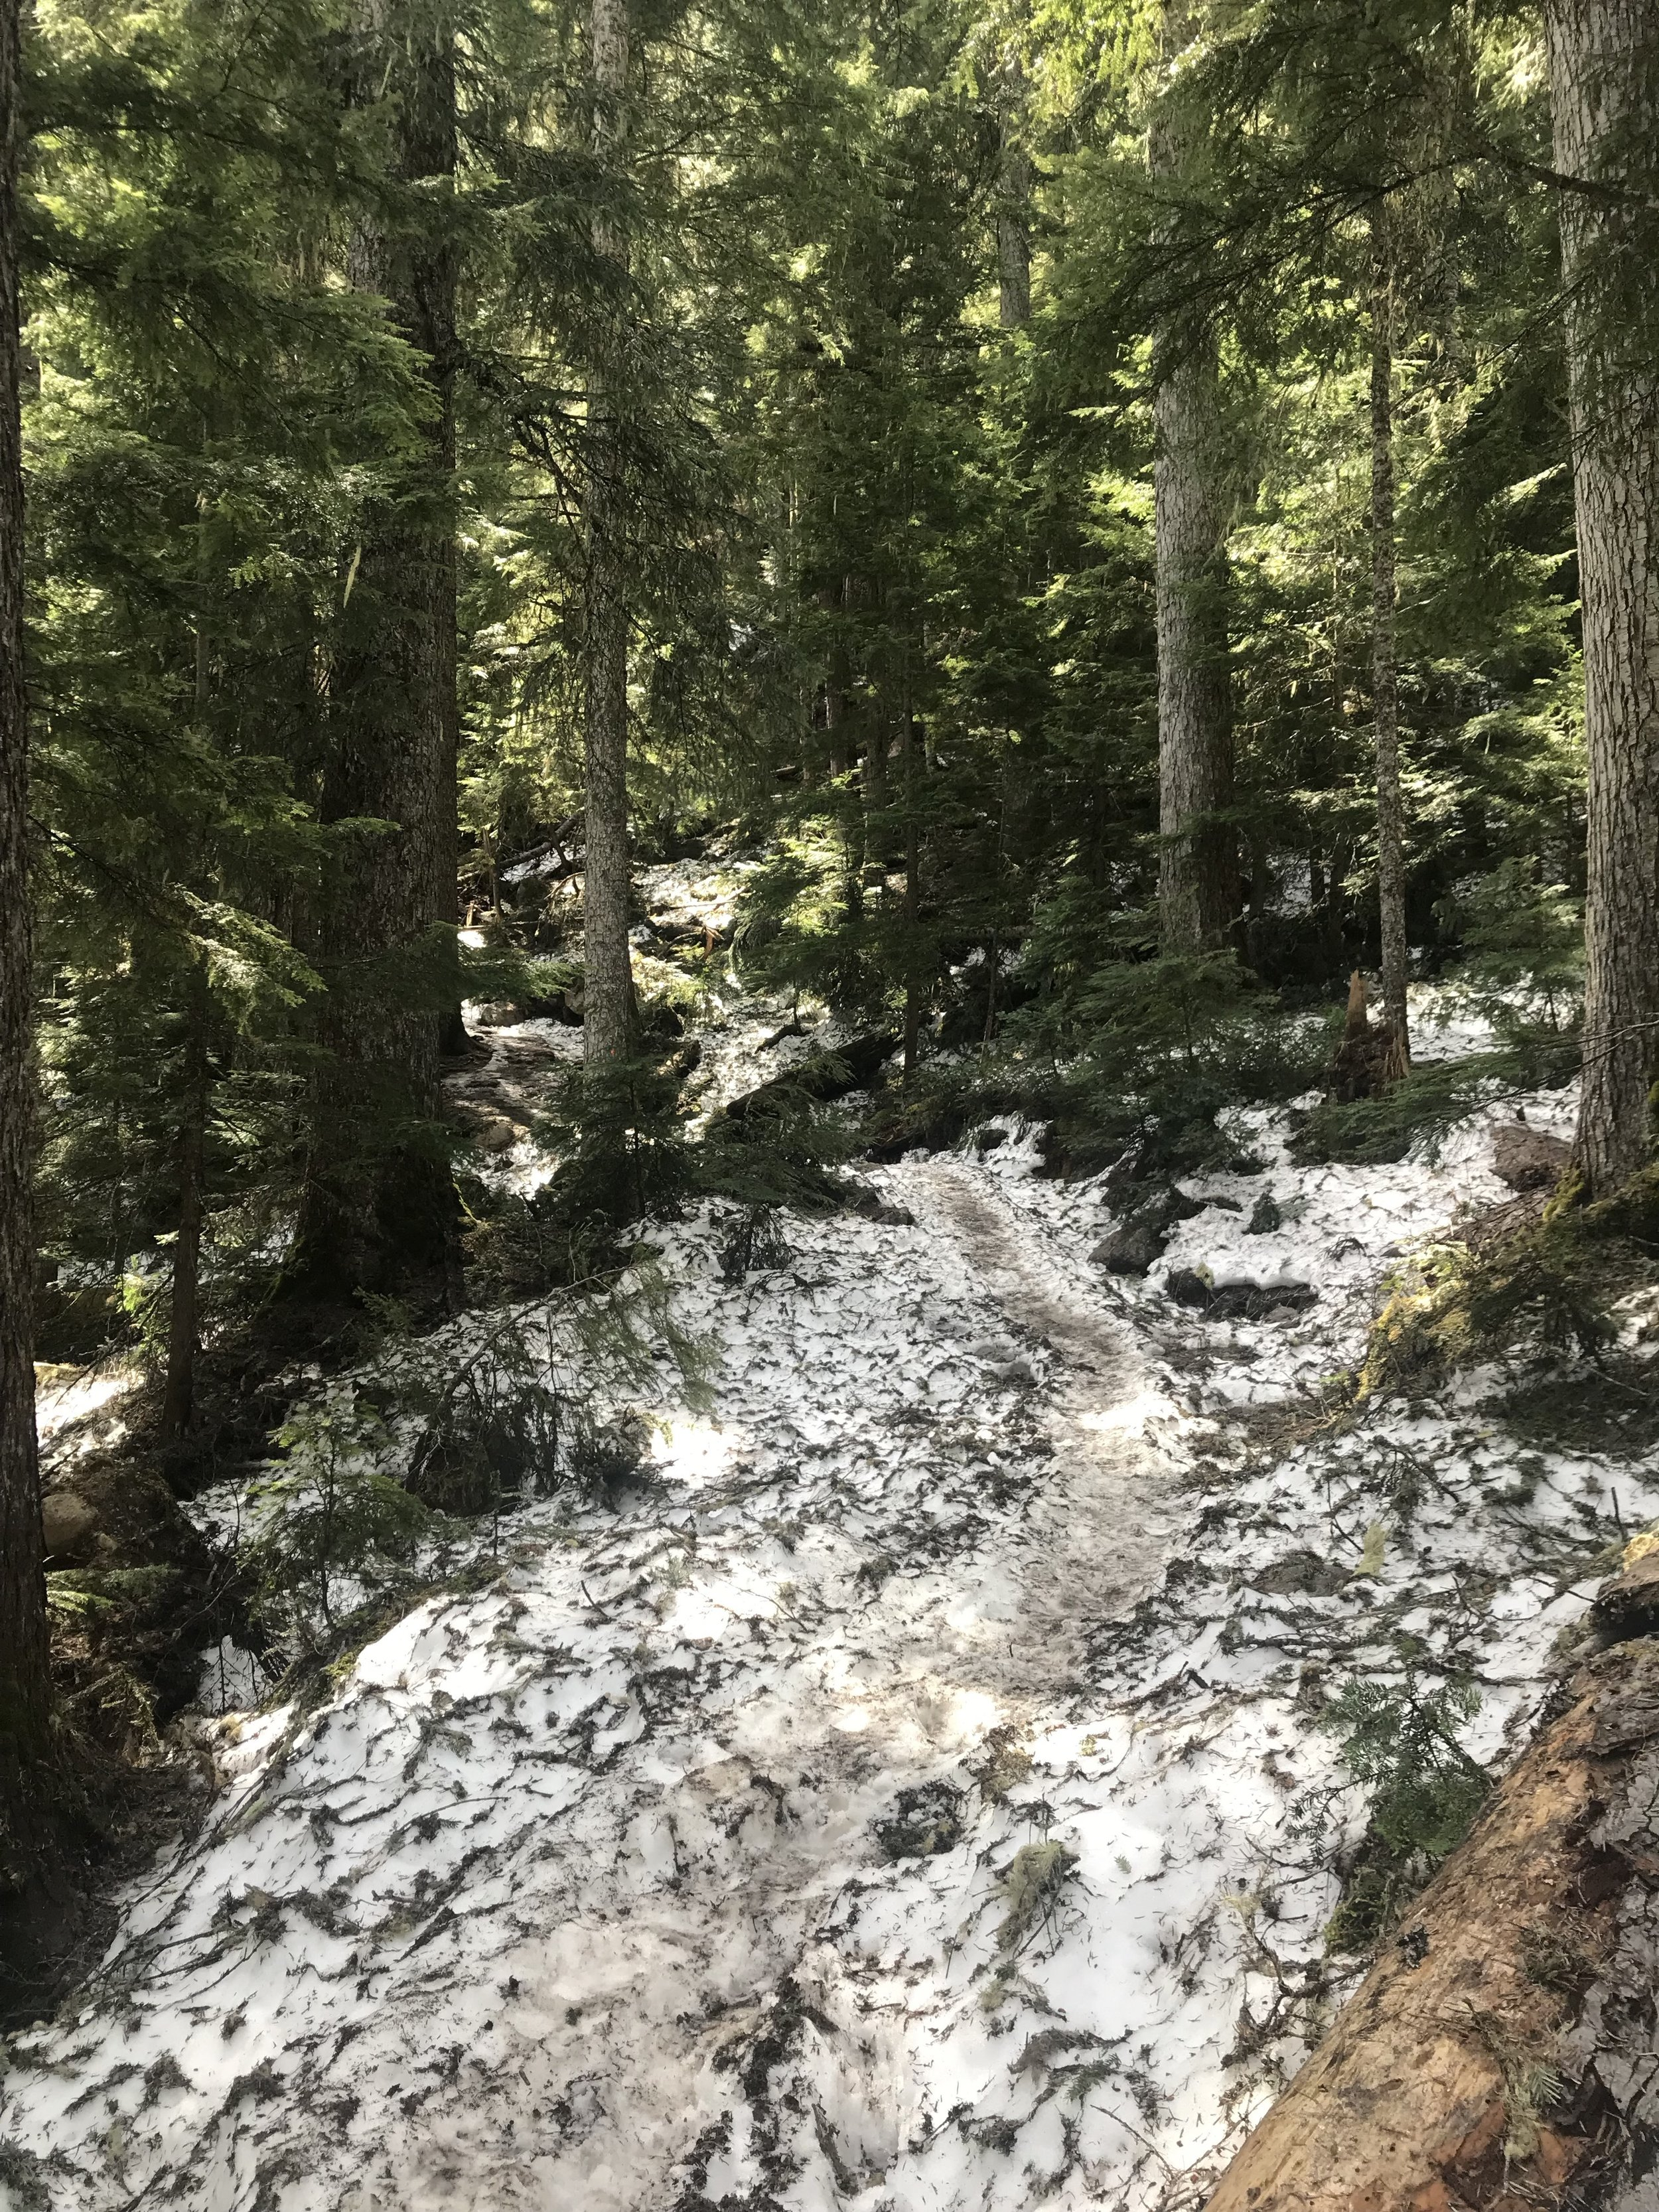 A more tame part of the snow-packed trail.